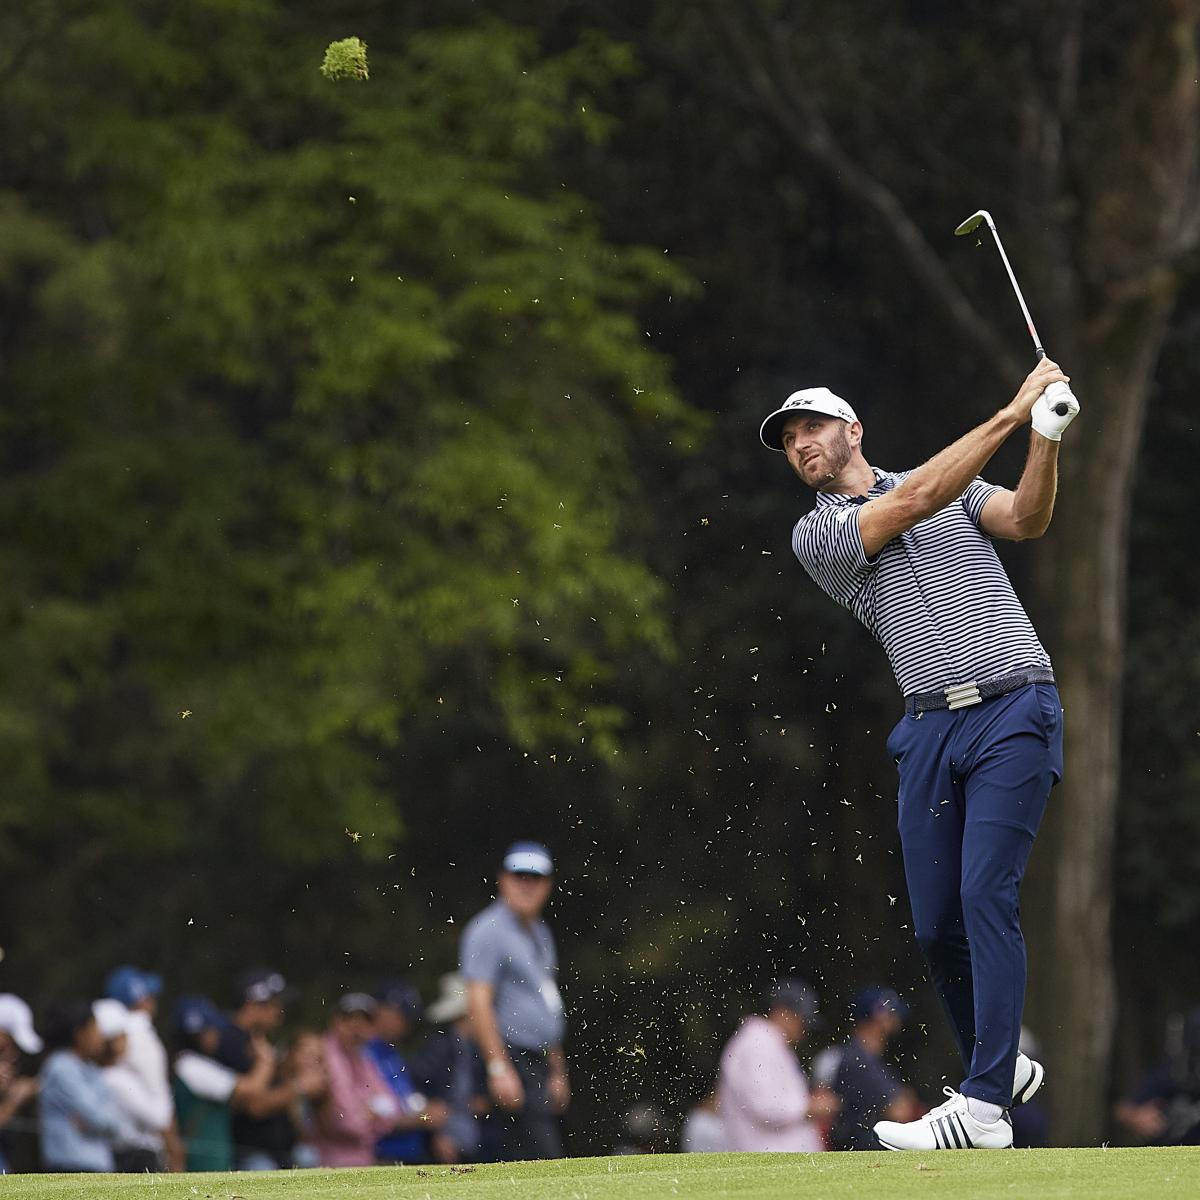 Players Championship Odds 2019: Vegas Projections For Top